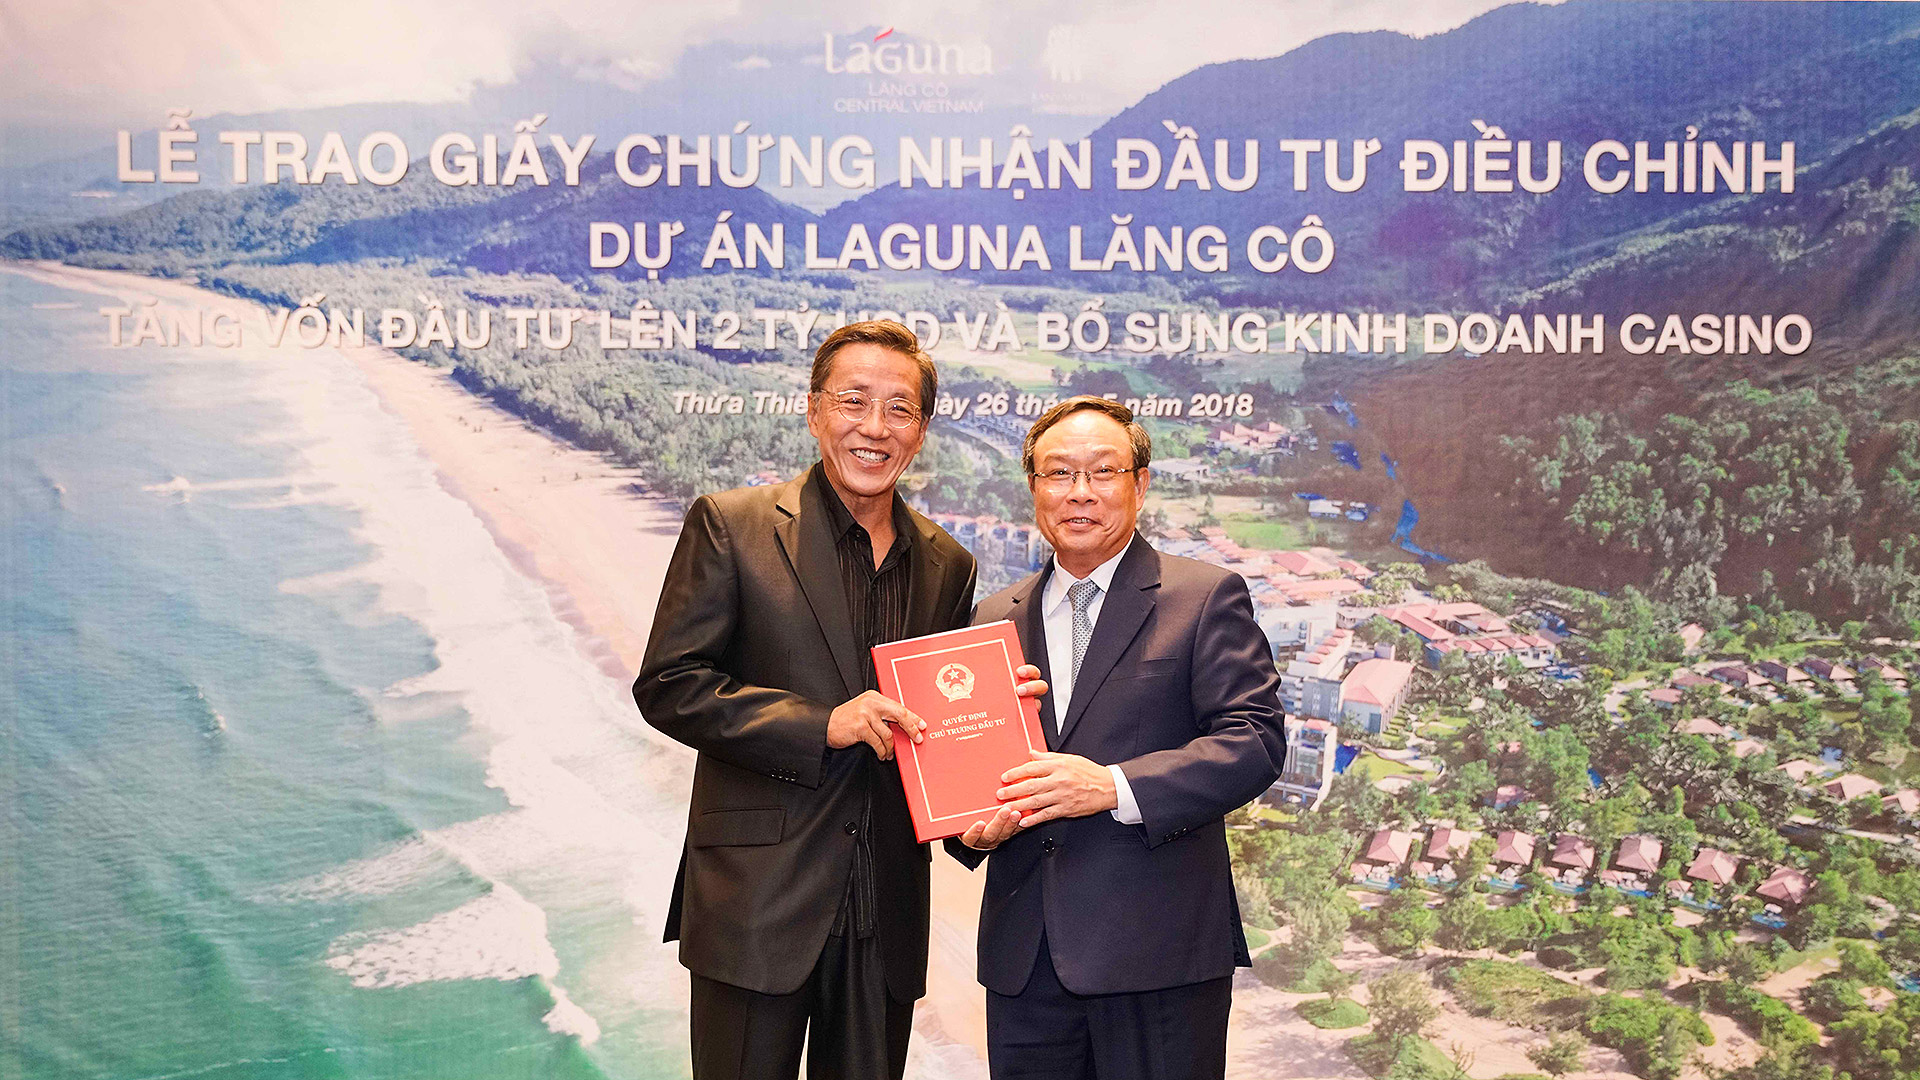 the casino license were presented by Chairman of the Provincial People's Committee Mr Nguyen Van Cao to Executive Chairman of Banyan Tree Holdings Mr Ho Kwon Ping at Laguna Lăng Cô